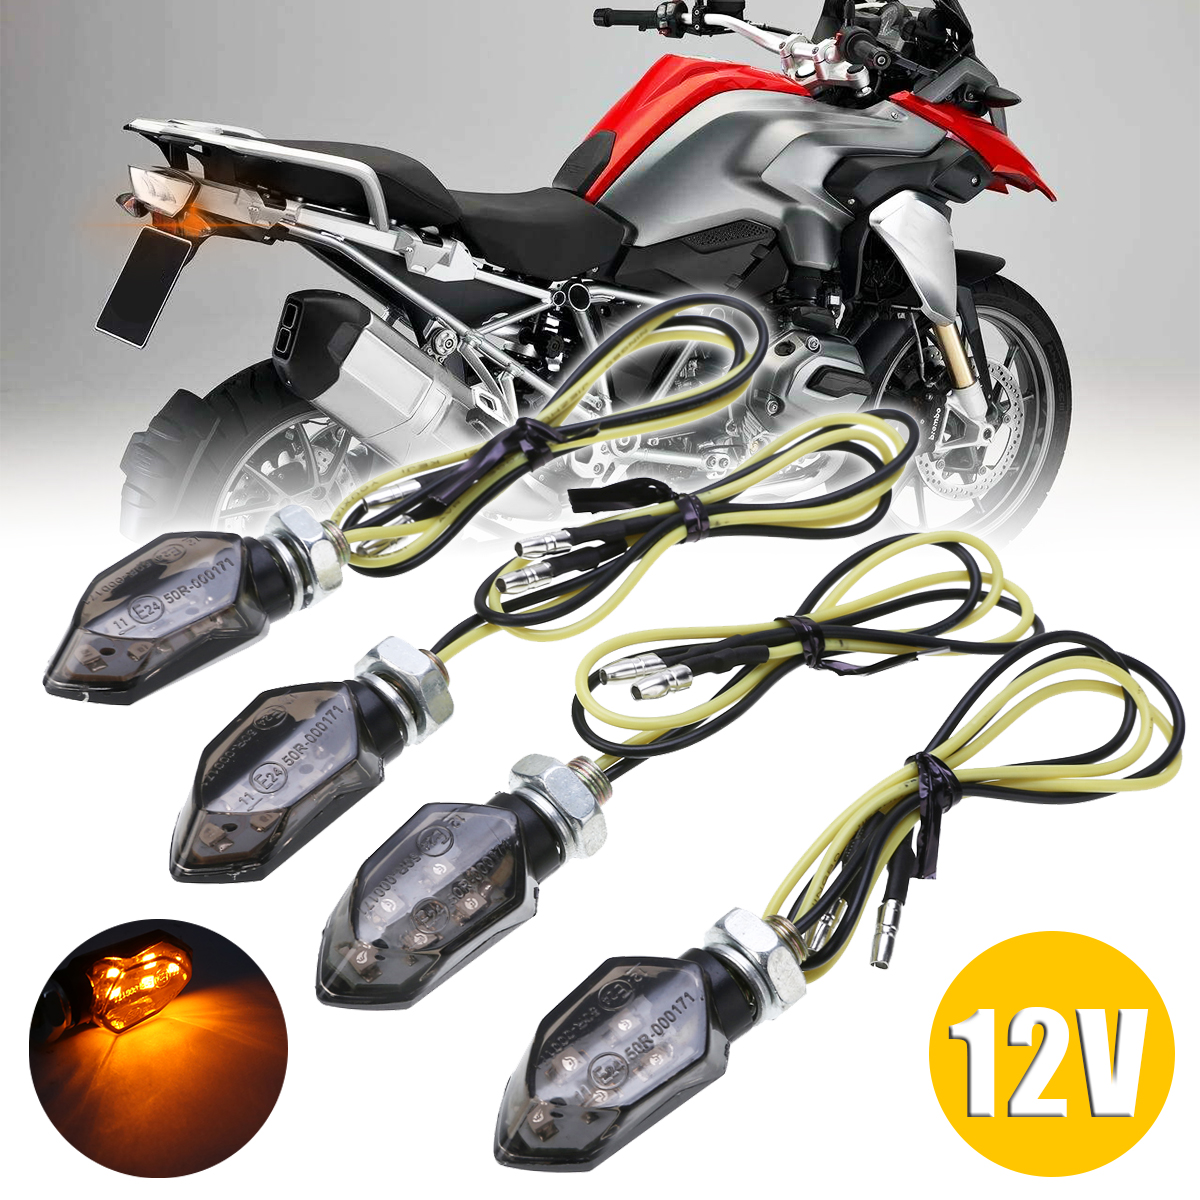 For Suzuki For Kawasaki 4PCS Mini Motorcycle Smoke Lens Turn Signal Light 5LED 12V Amber Blinker Indicator Lamp Two Wire Mayitr